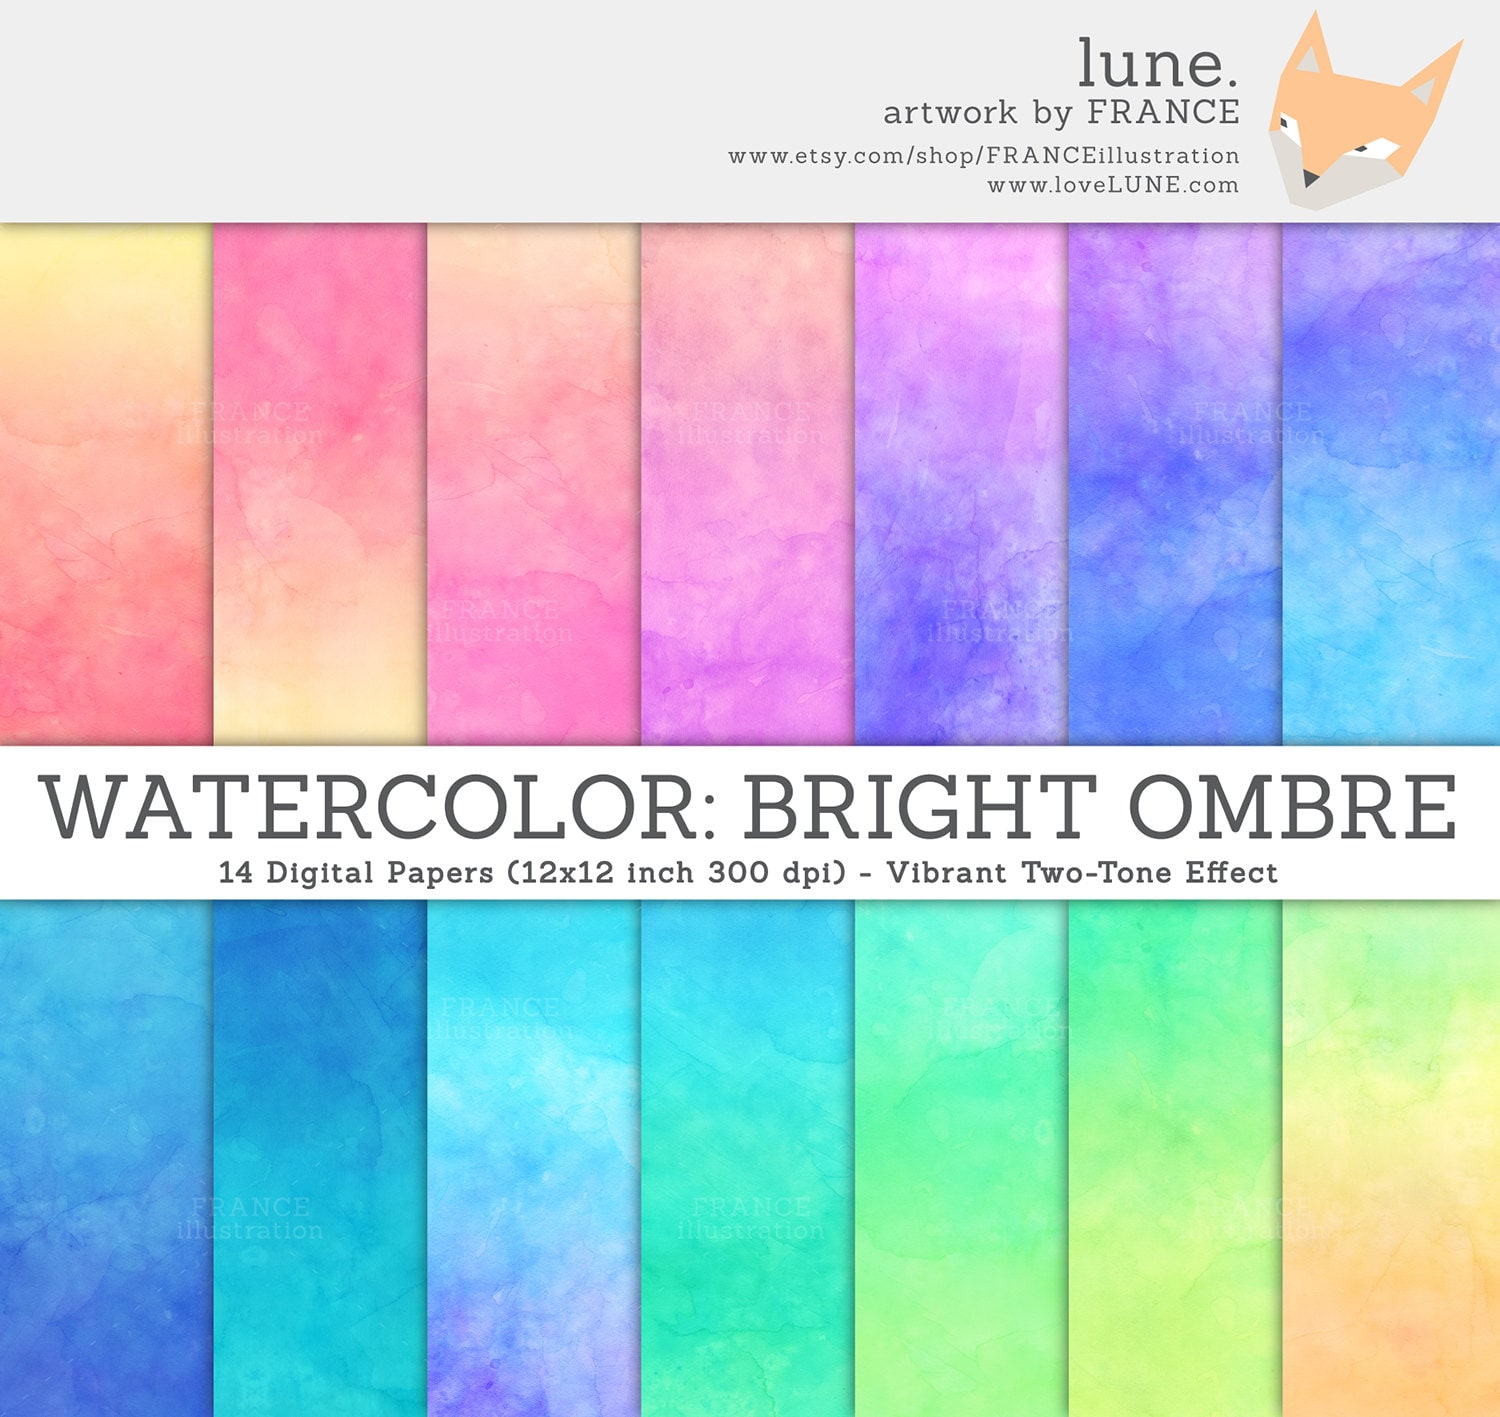 3 FOR 2. Watercolor Digital Paper. Bright Ombre Watercolor